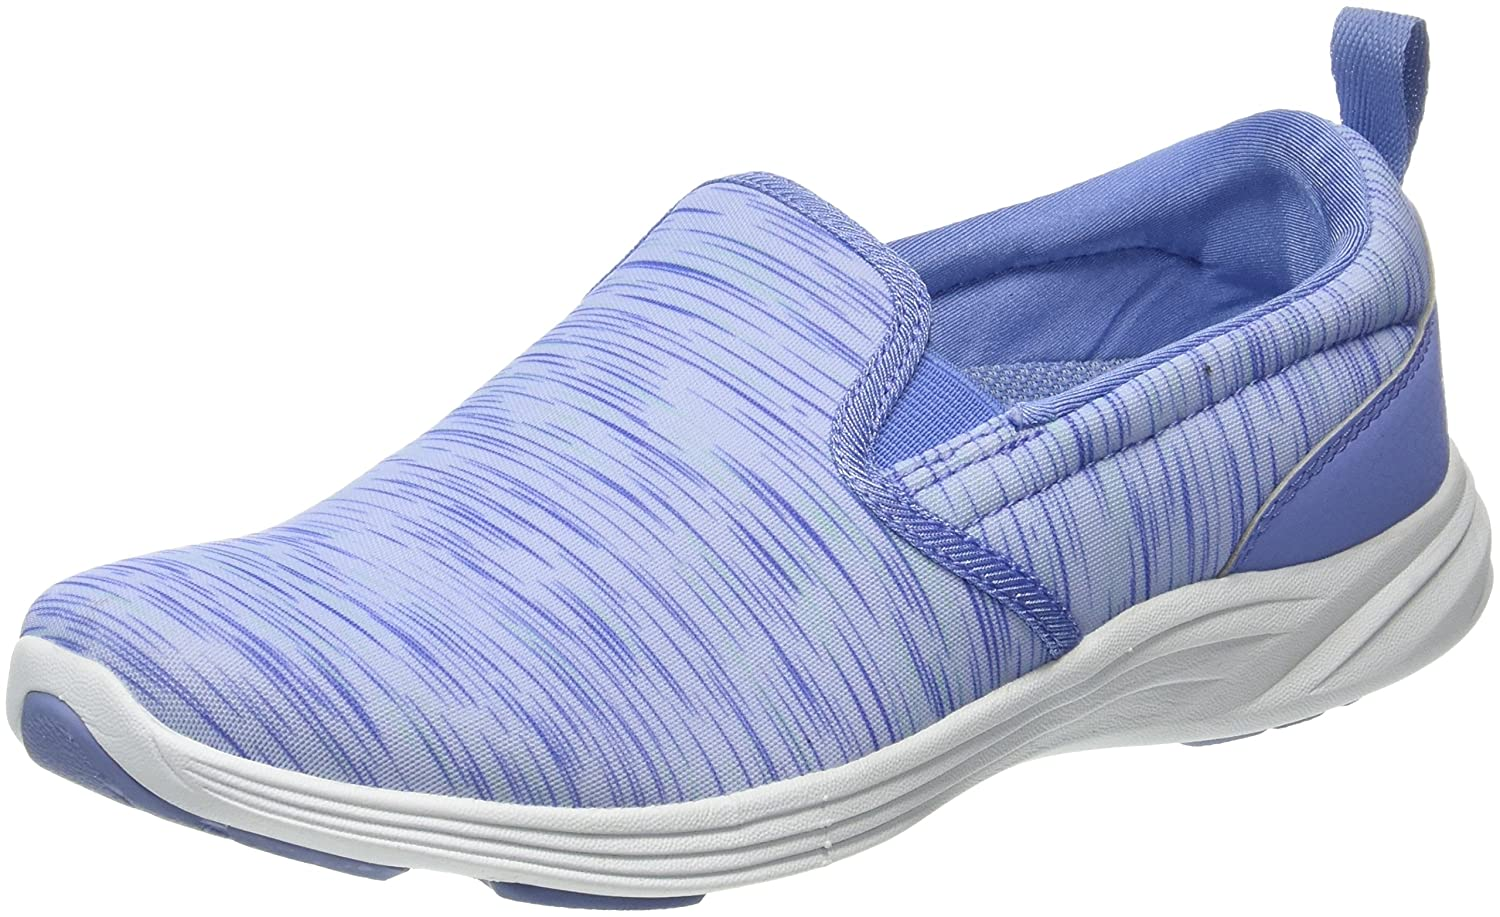 Vionic Women's Agile Kea Slip-on B072MSC5QH 9.5 B(M) US|Light Blue